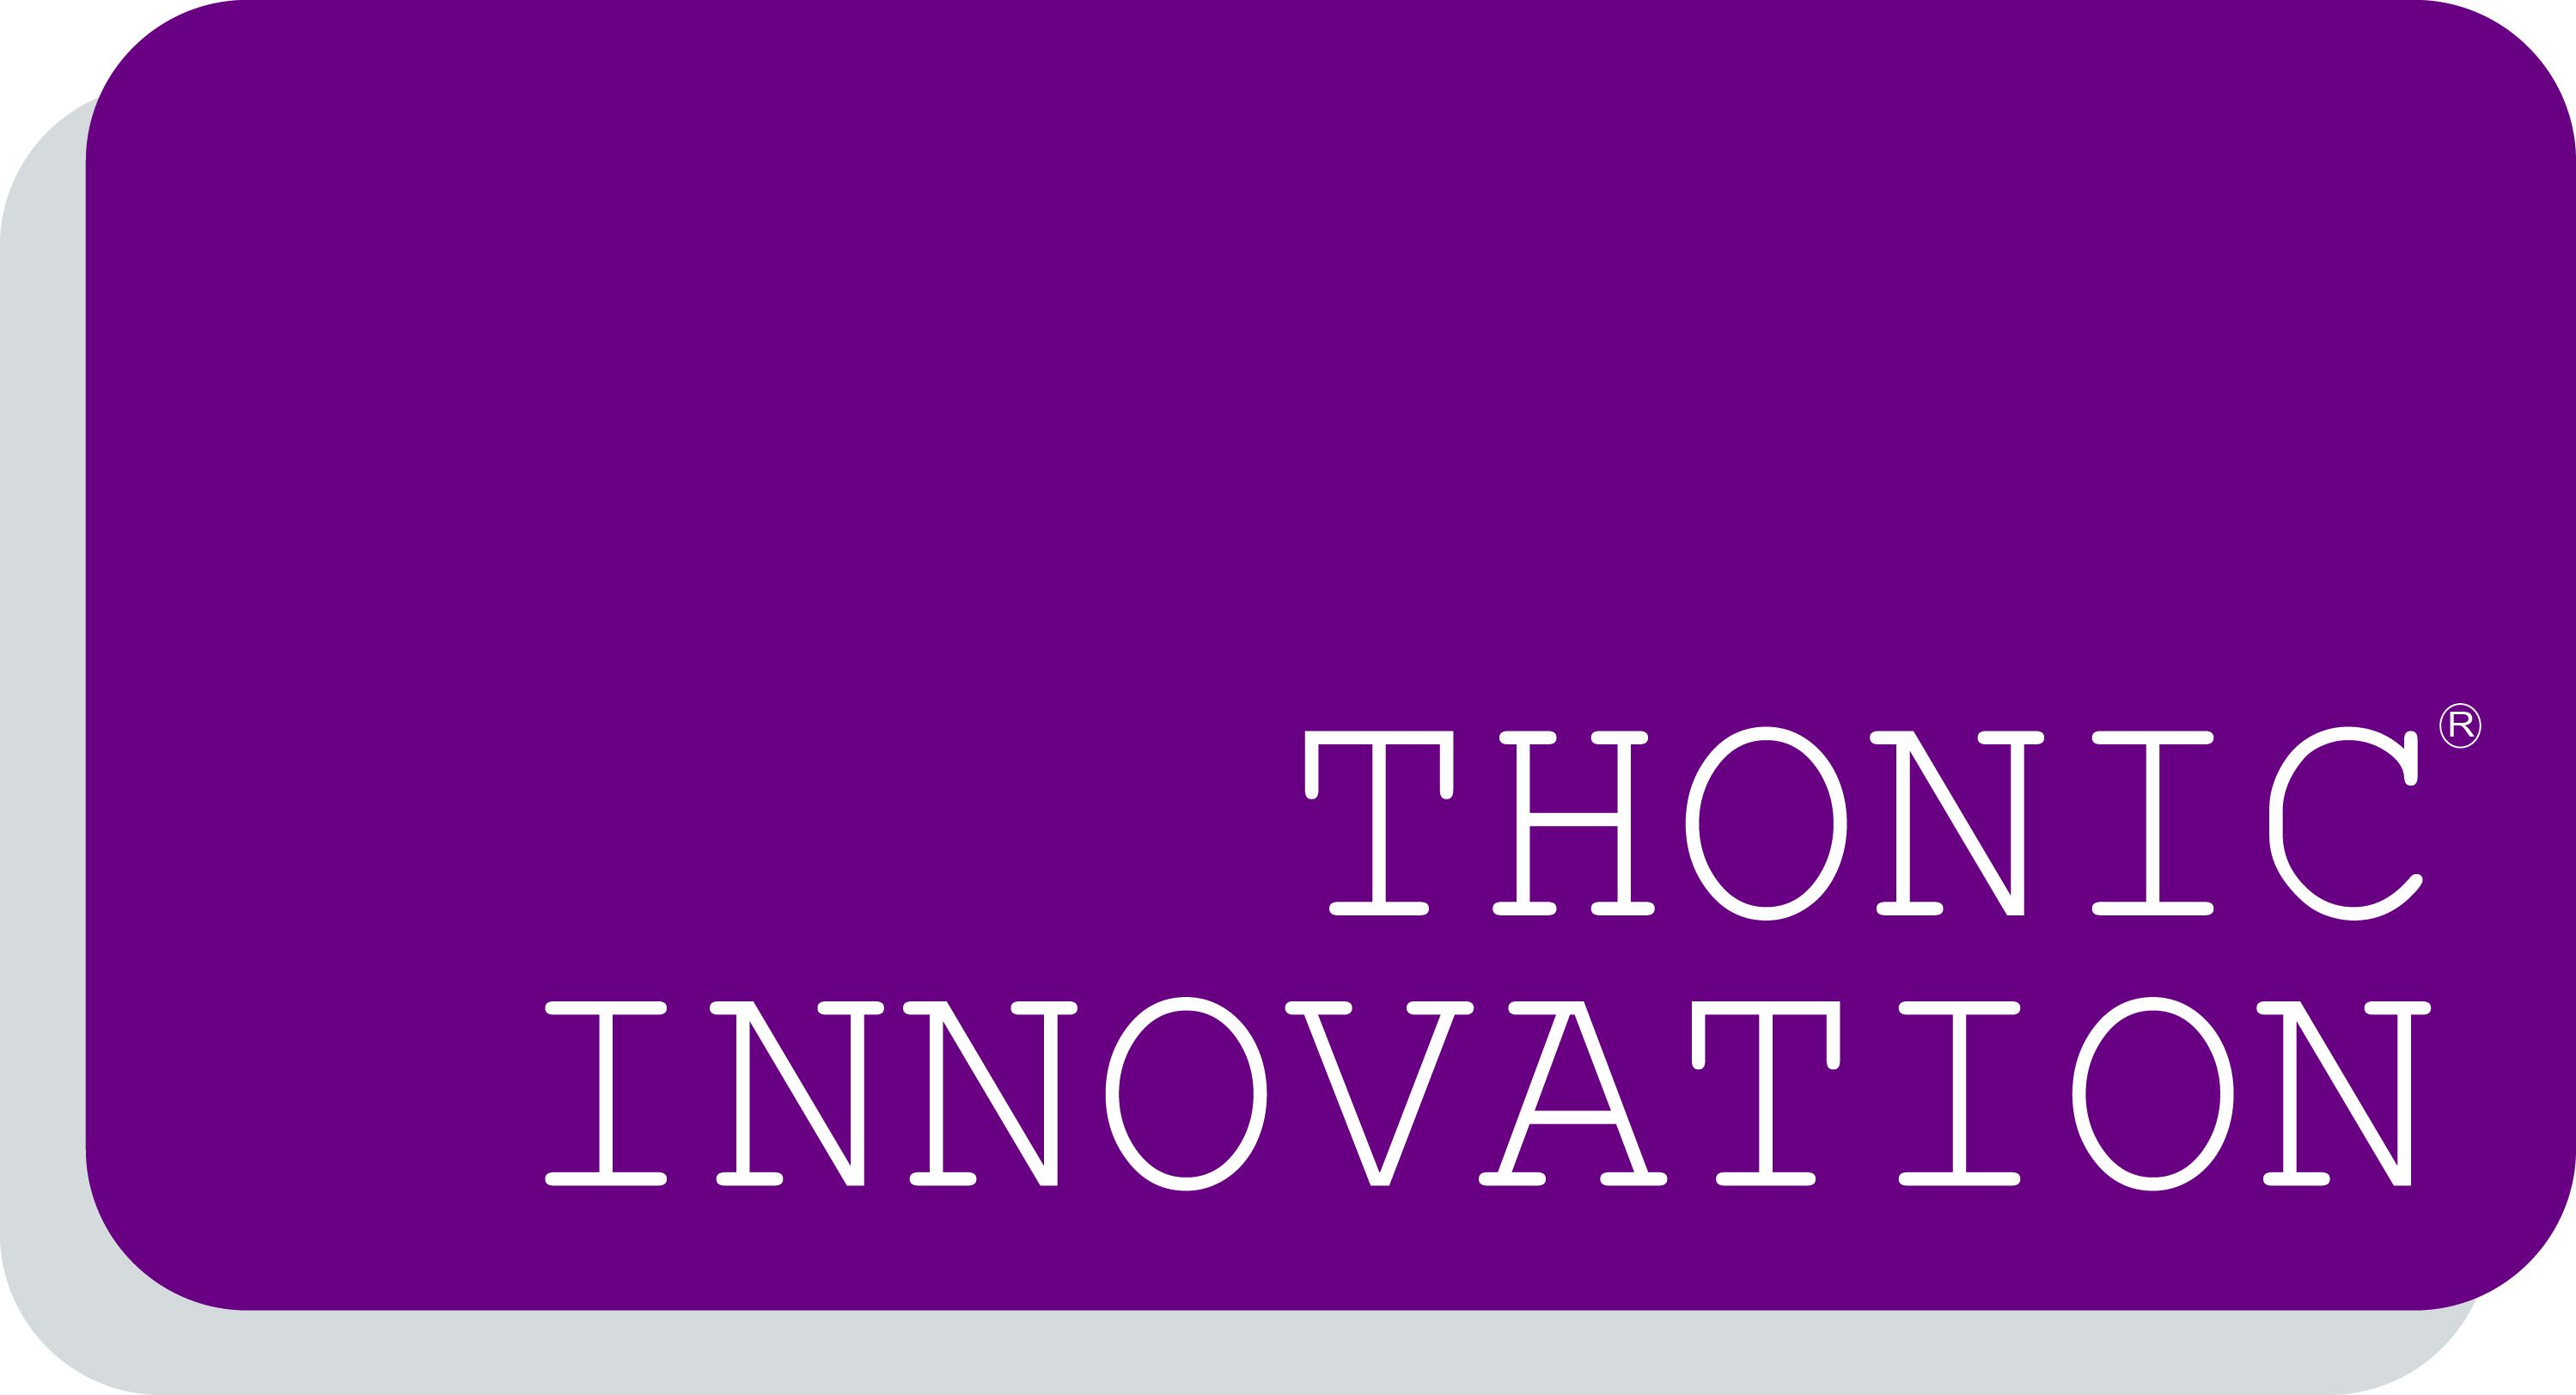 LOGO_THONICINNOVATION.jpg